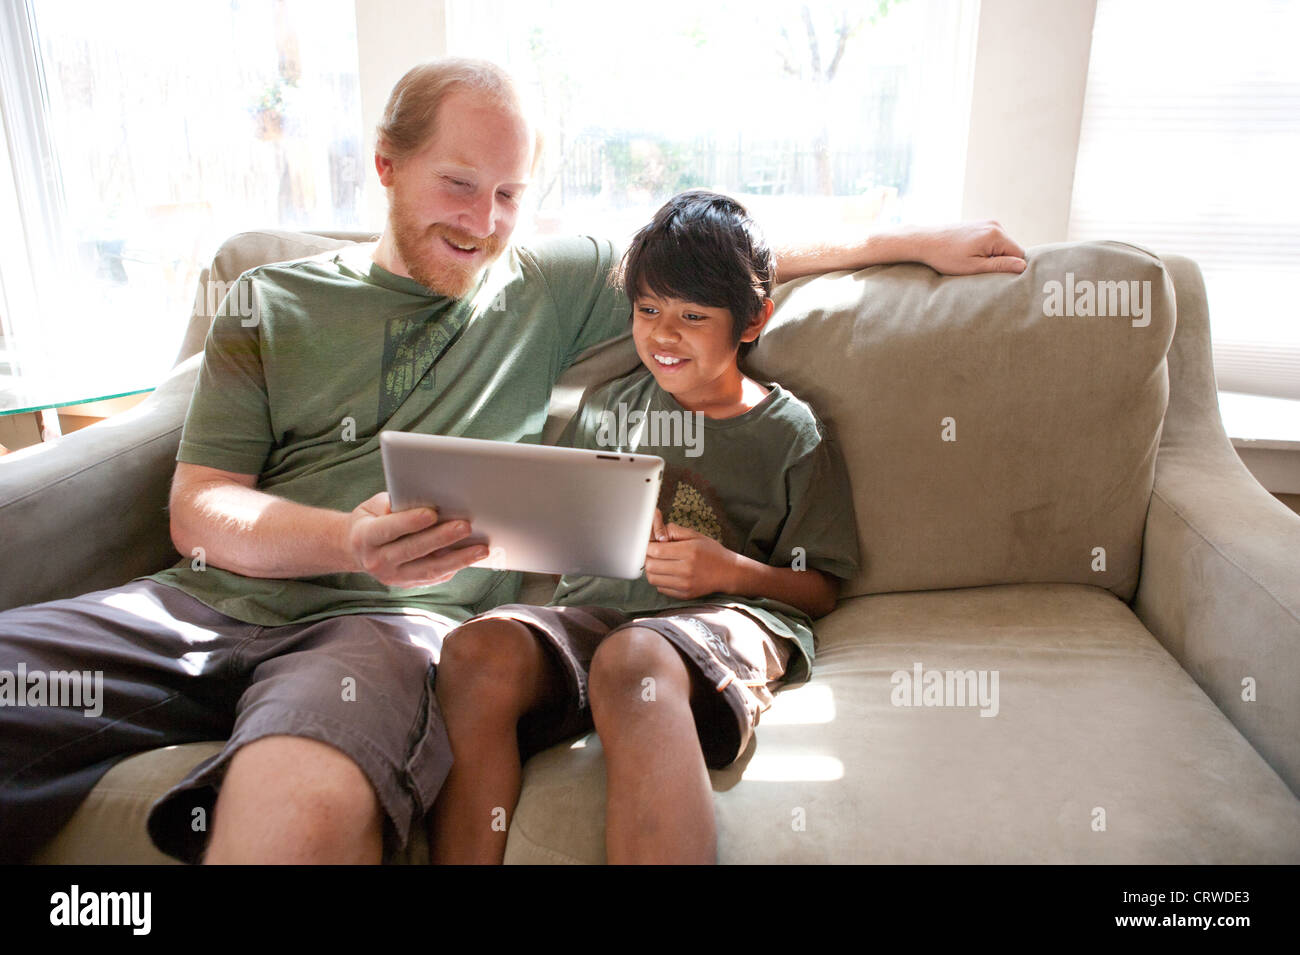 Father and adopted ten year old son watch a funny video on an Ipad at home. - Stock Image